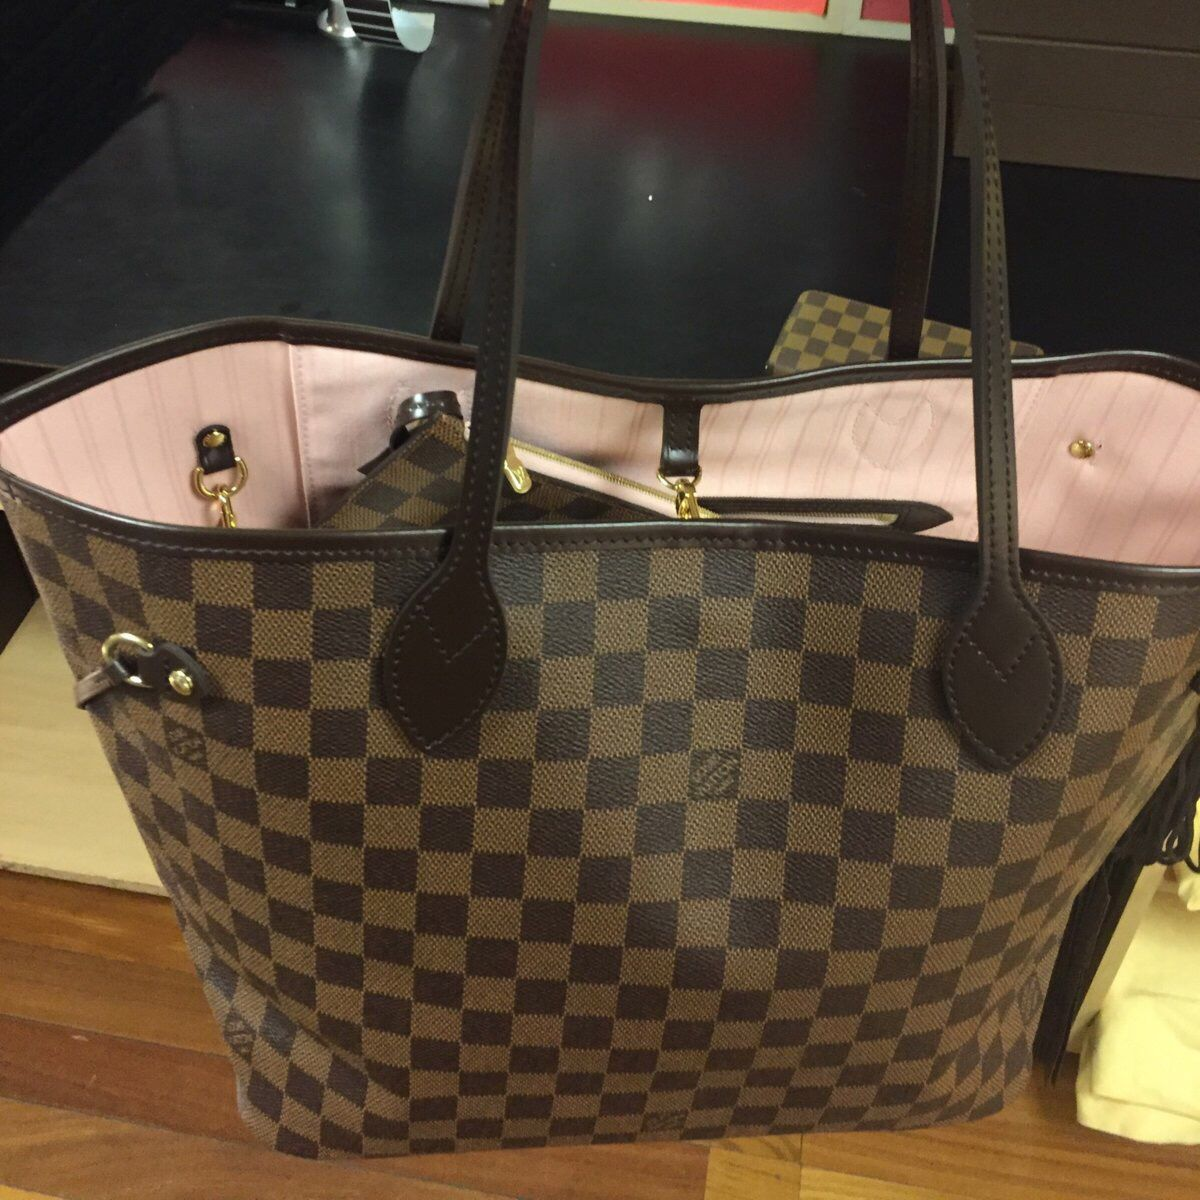 4fdeac7769c Louis Vuitton Neverfull MM in Damier Ebene with Rose Ballerine interior